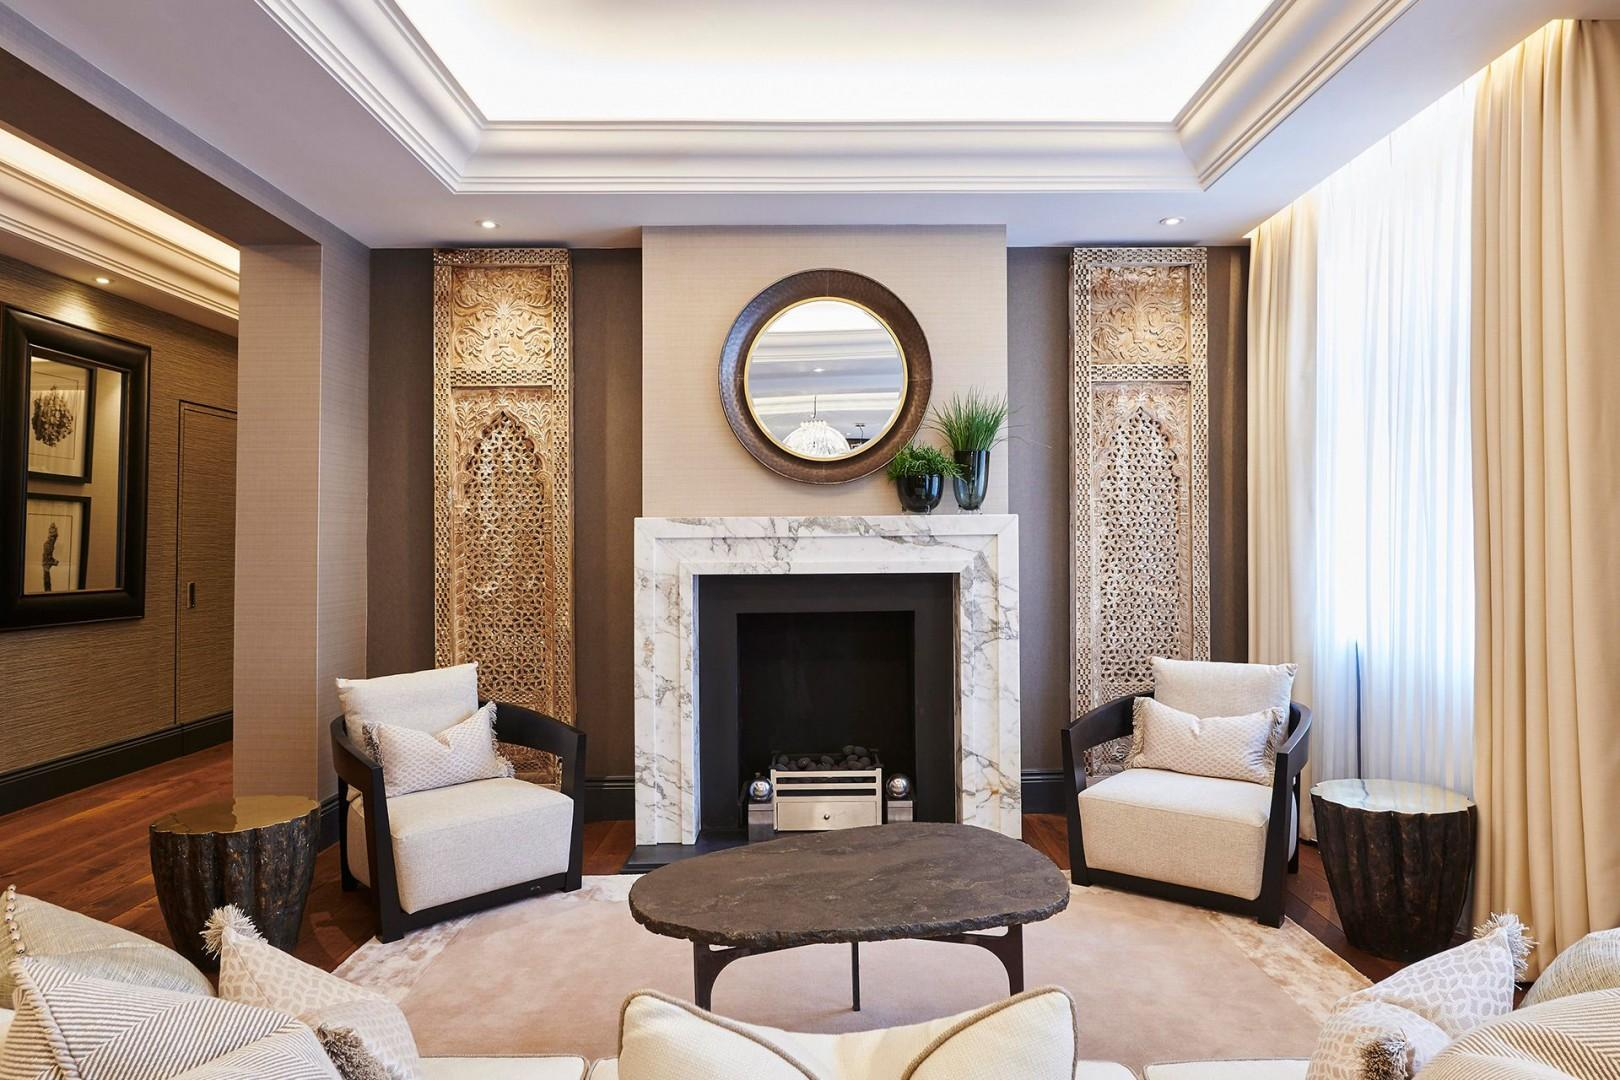 This palatial rental is the epitome of refinement